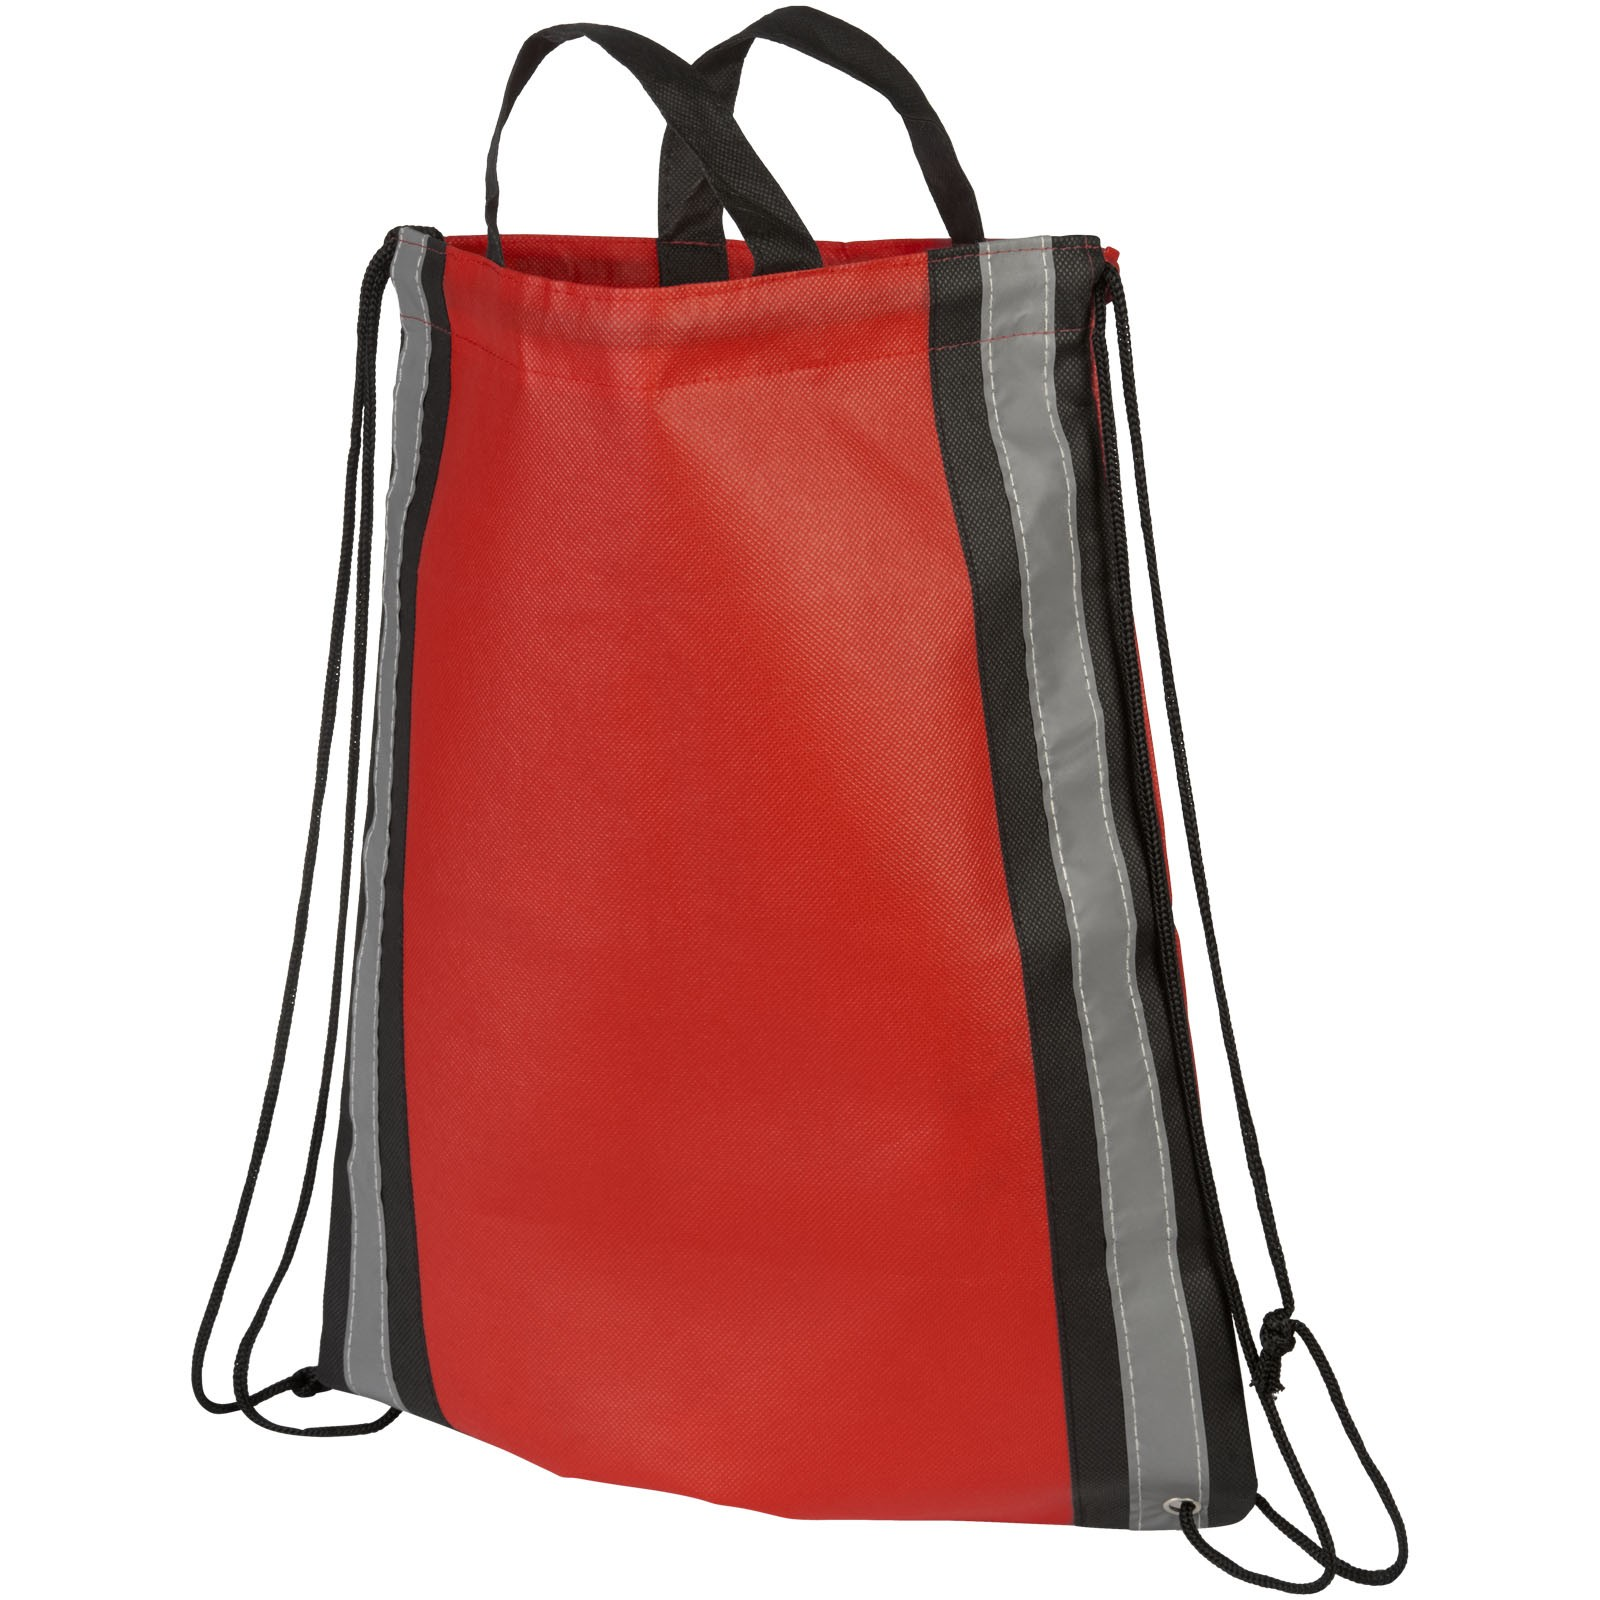 Reflective non-woven drawstring backpack - Red